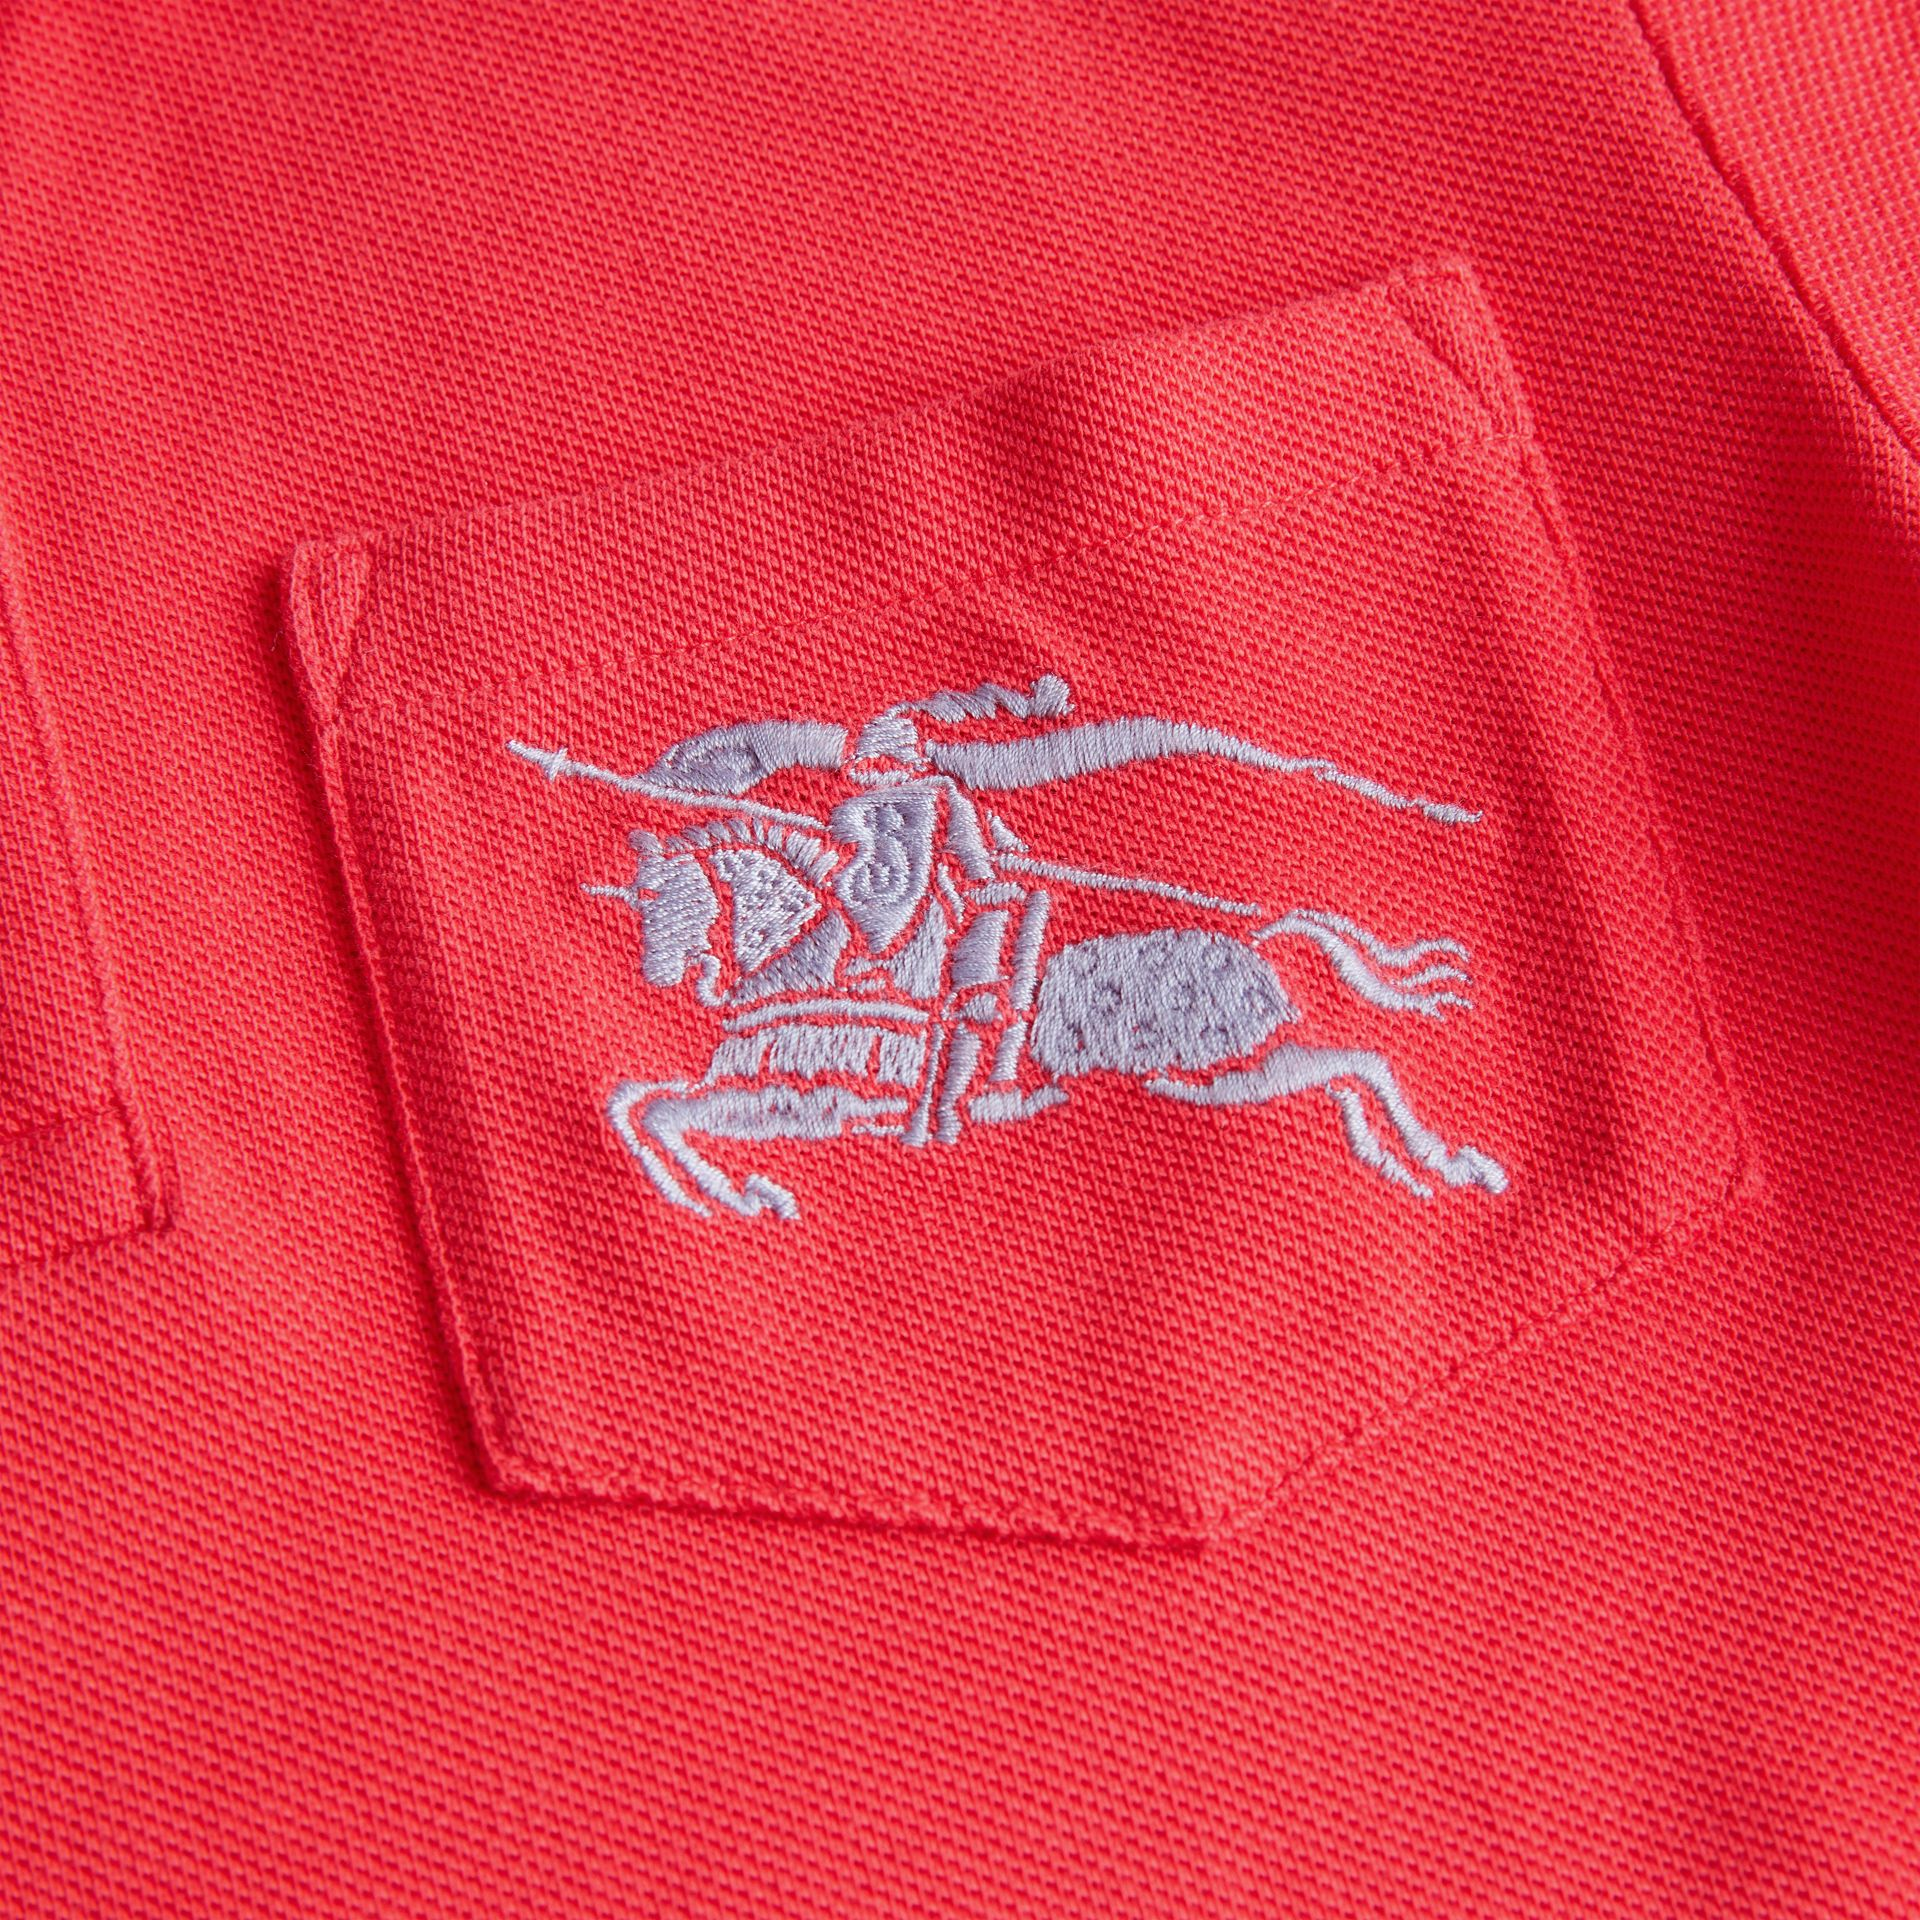 EKD Logo Cotton Piqué Polo Shirt in Bright Red | Burberry - gallery image 1